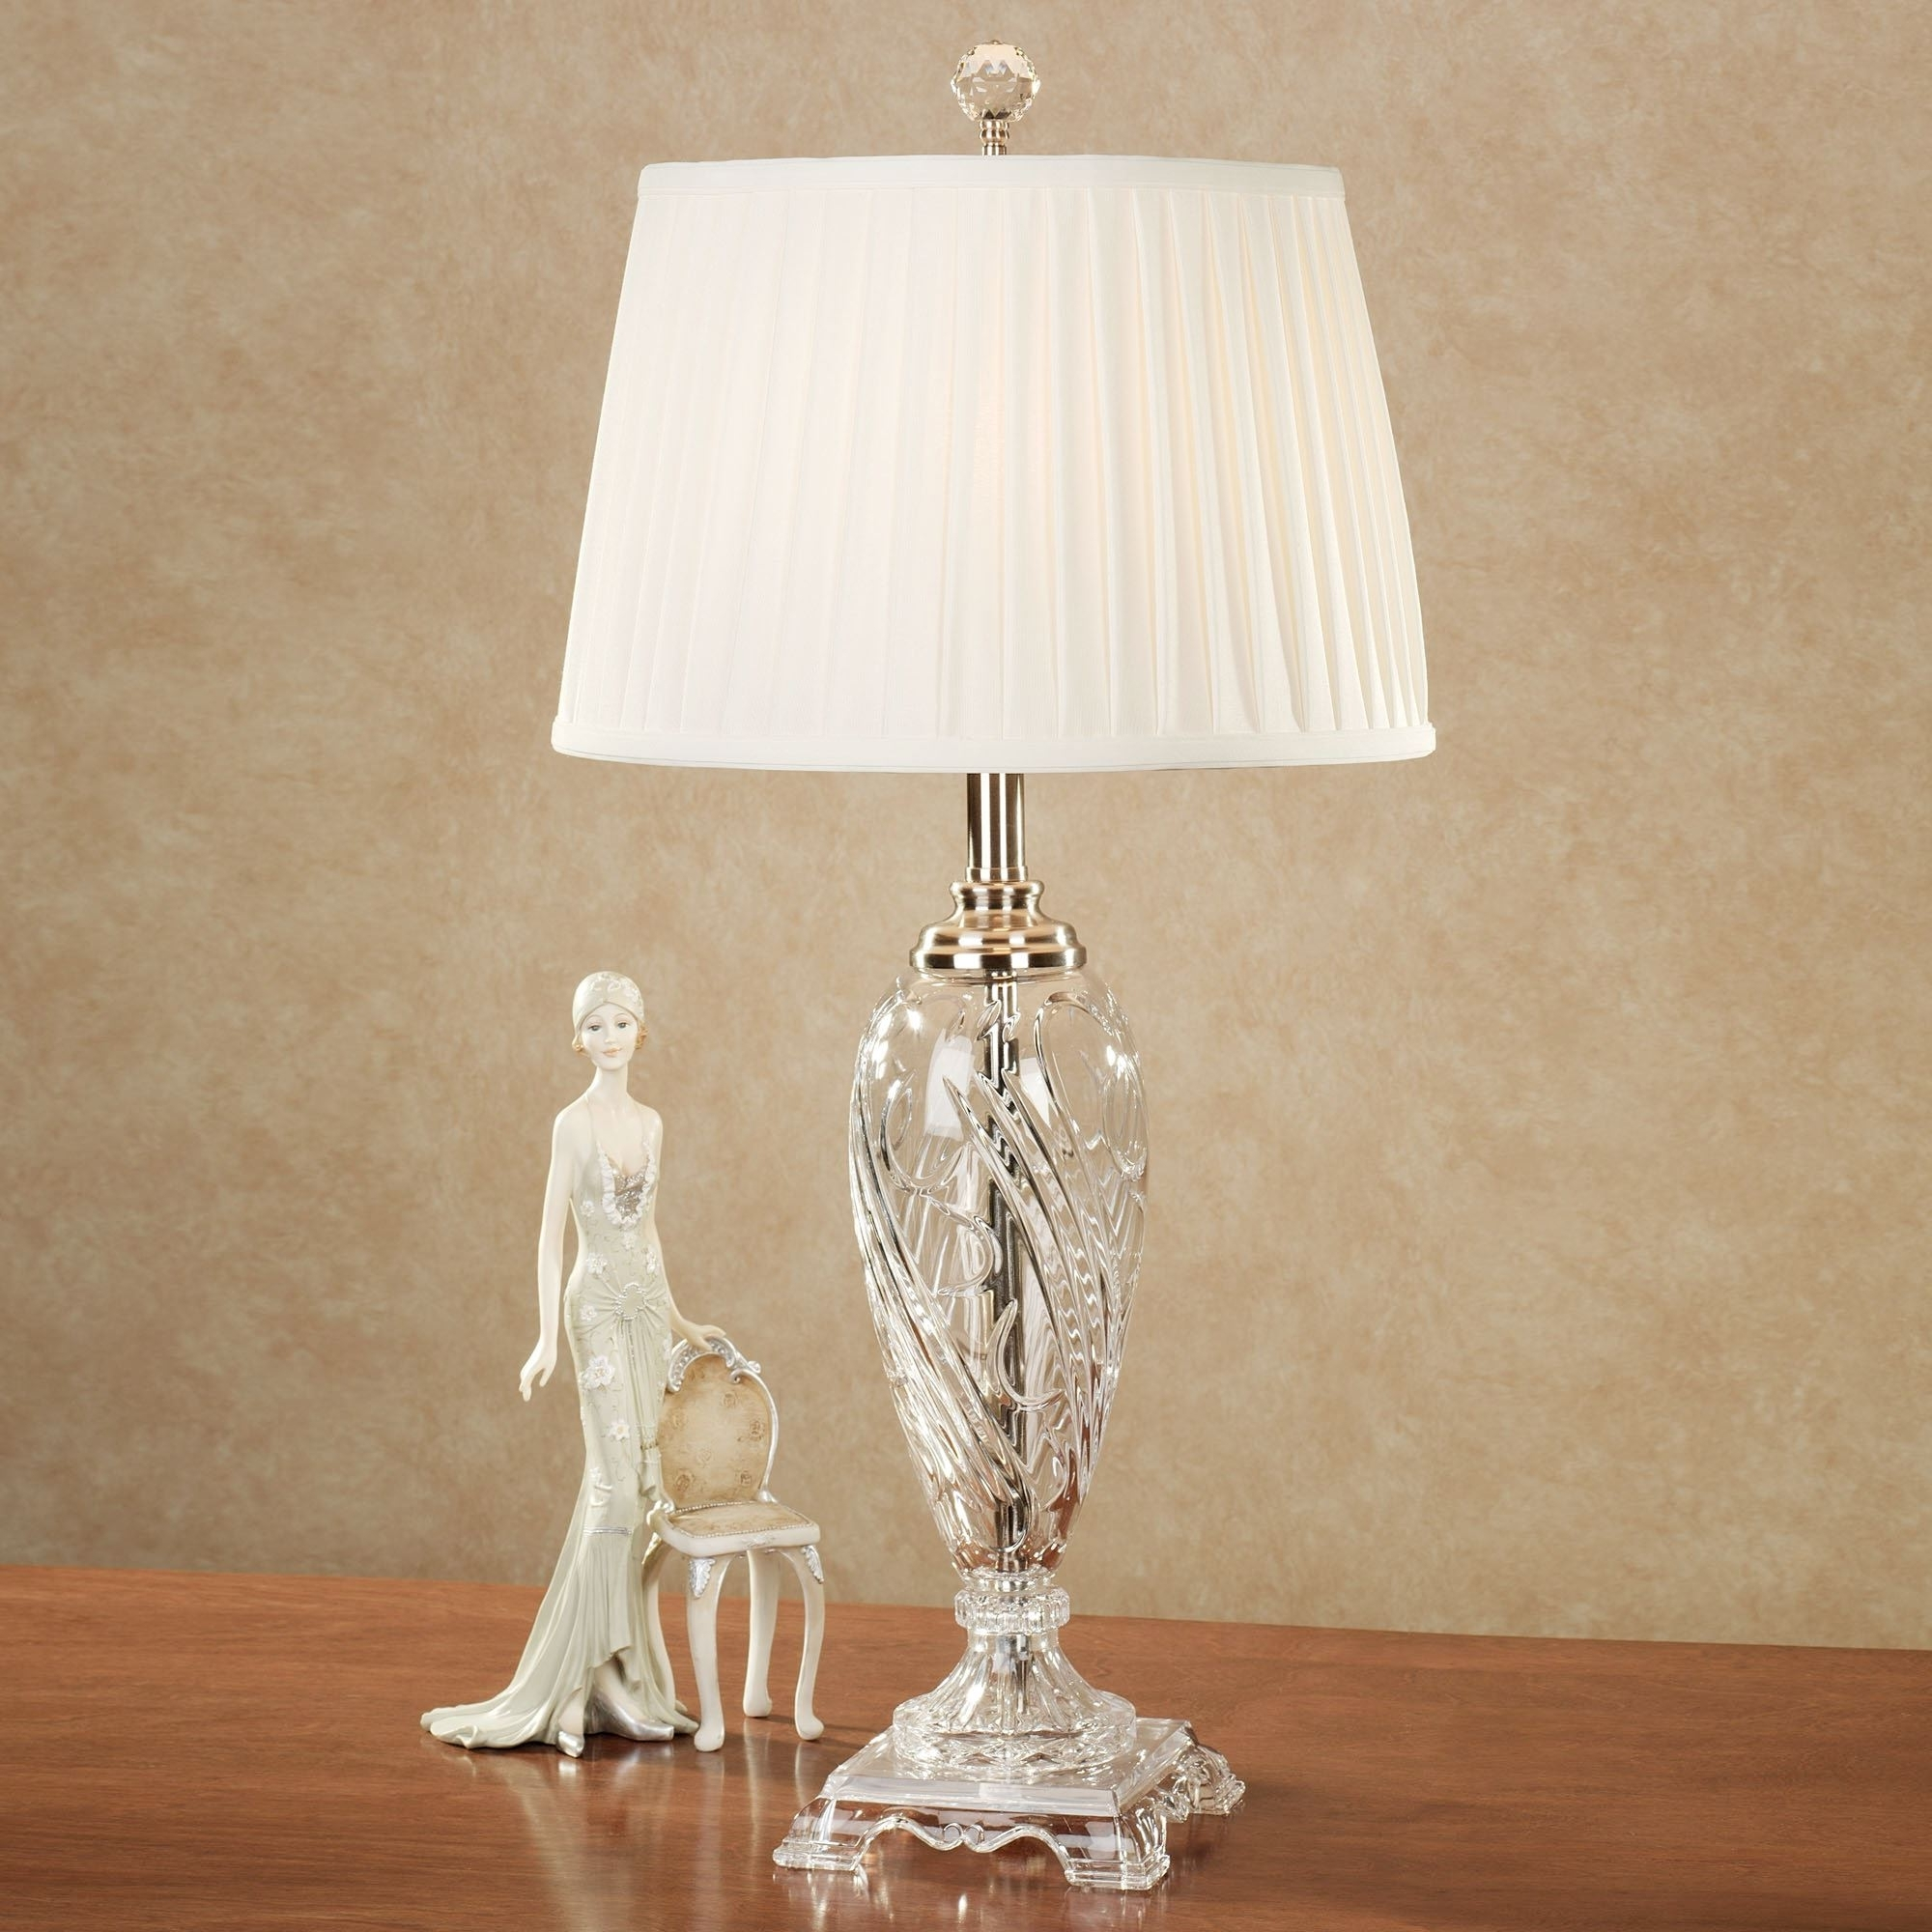 Most Recently Released Home Decor: Fetching Crystal Table Lamps & Lamps Amazing Floor Lamp With Chandelier Night Stand Lamps (View 6 of 15)